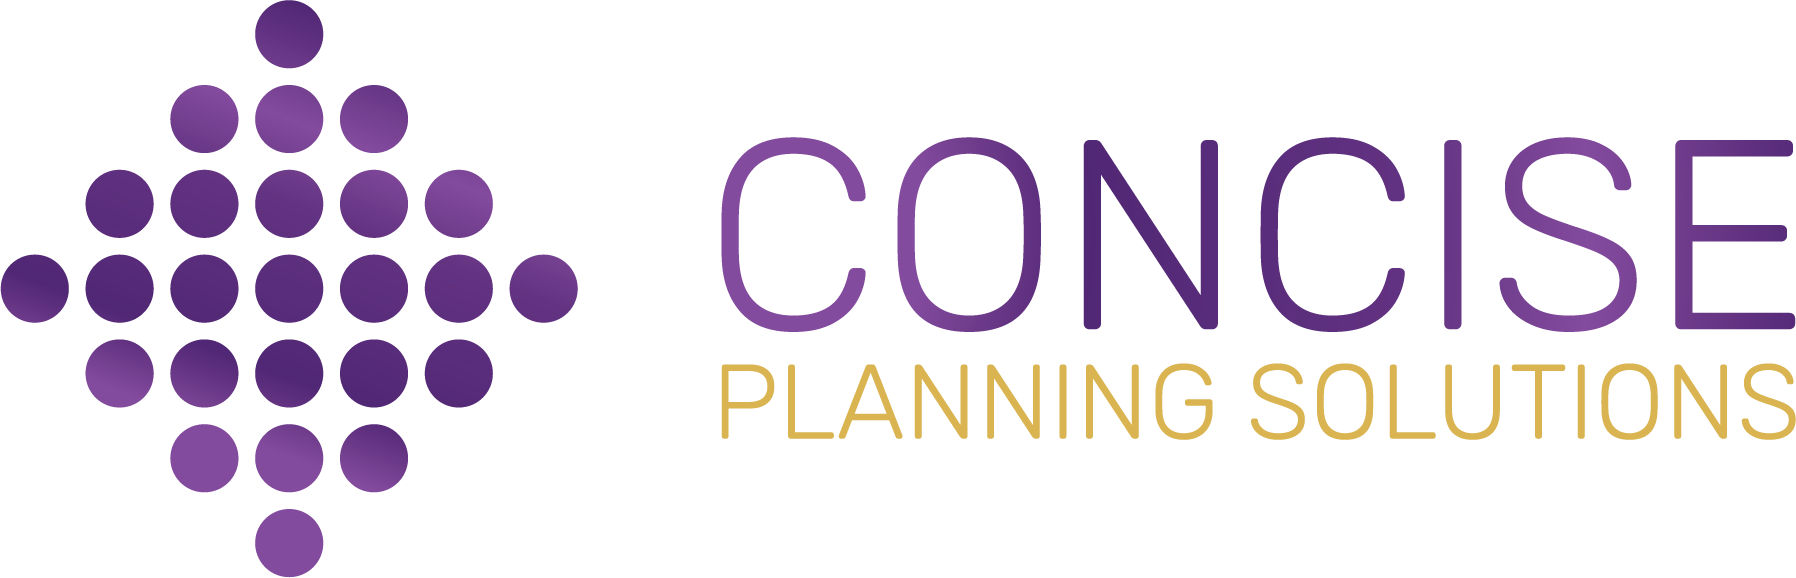 Concise Planning Solutions LOGO FINAL